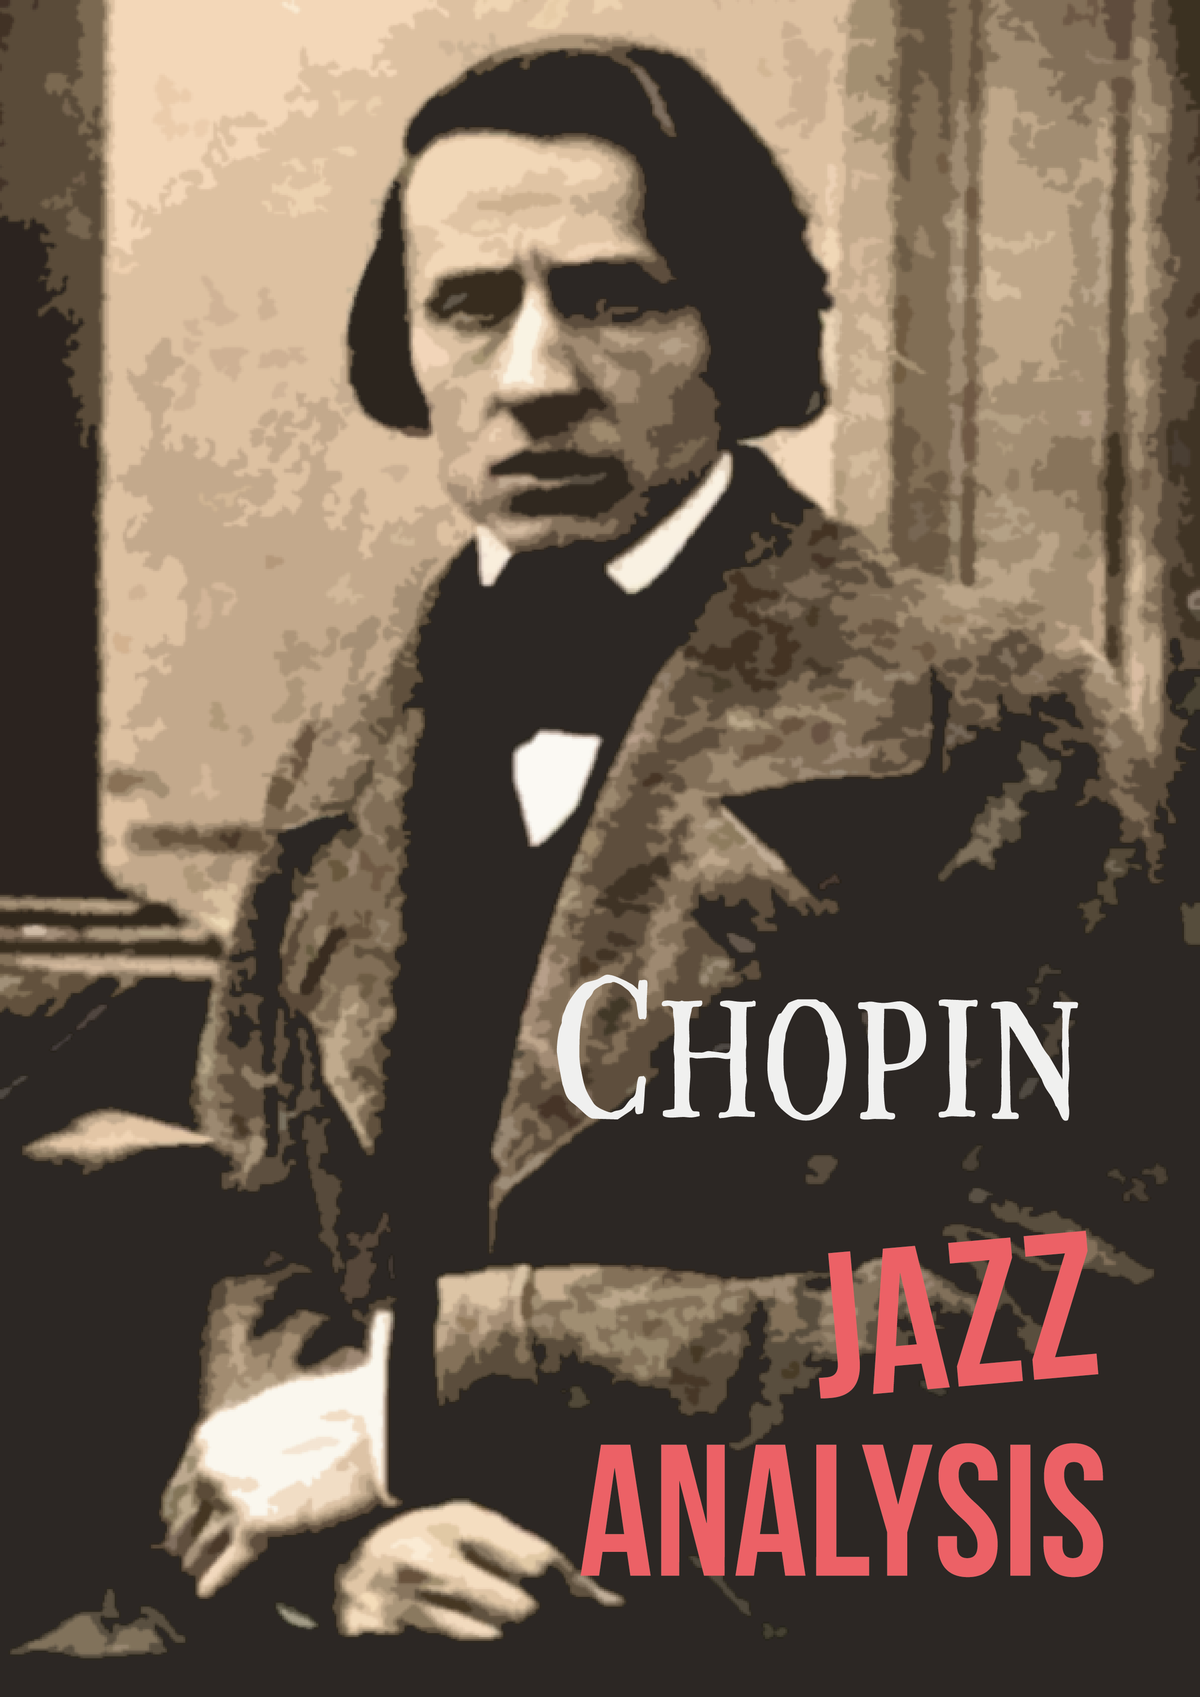 Chopin Jazz Analysis- Jazzduets